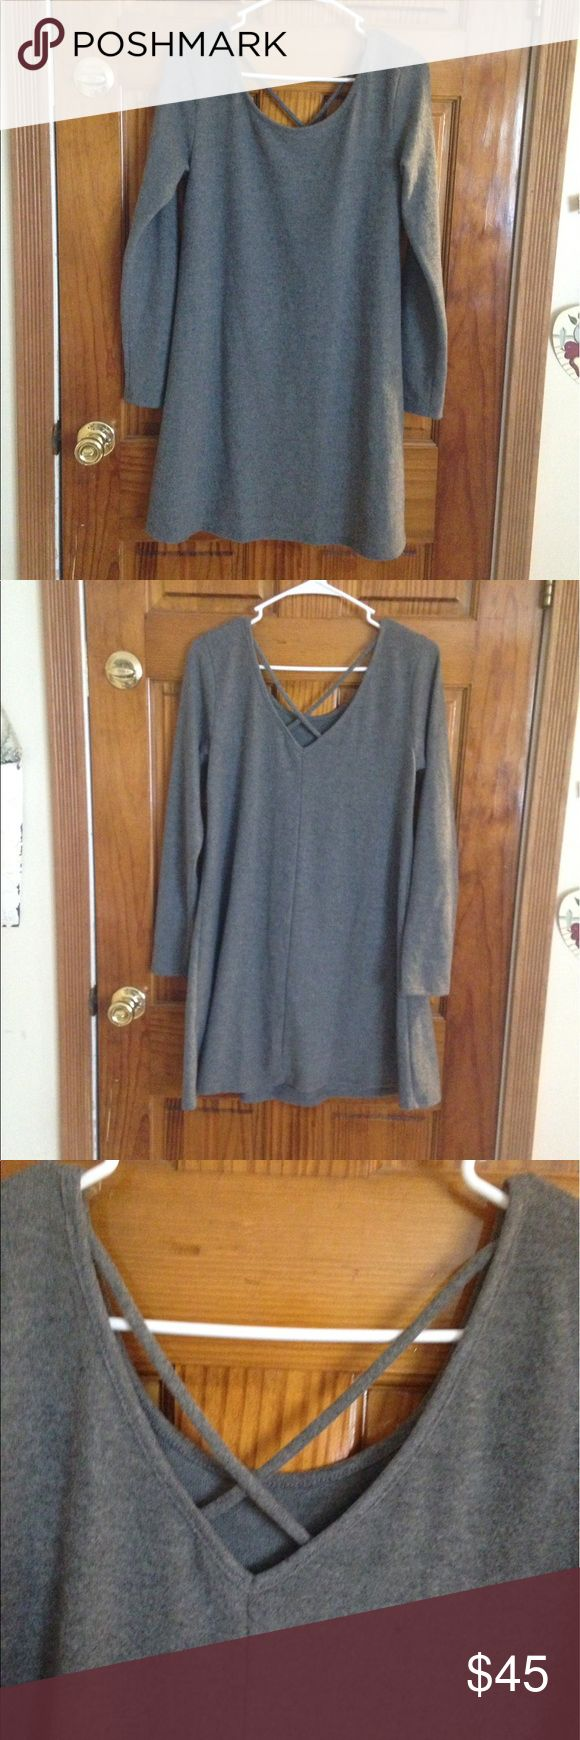 New Listing! NWT grey long sleeve dress NWT grey long sleeve dress size Medium originally $44. Brand is Francesca's Collections Francesca's Collections Dresses Long Sleeve